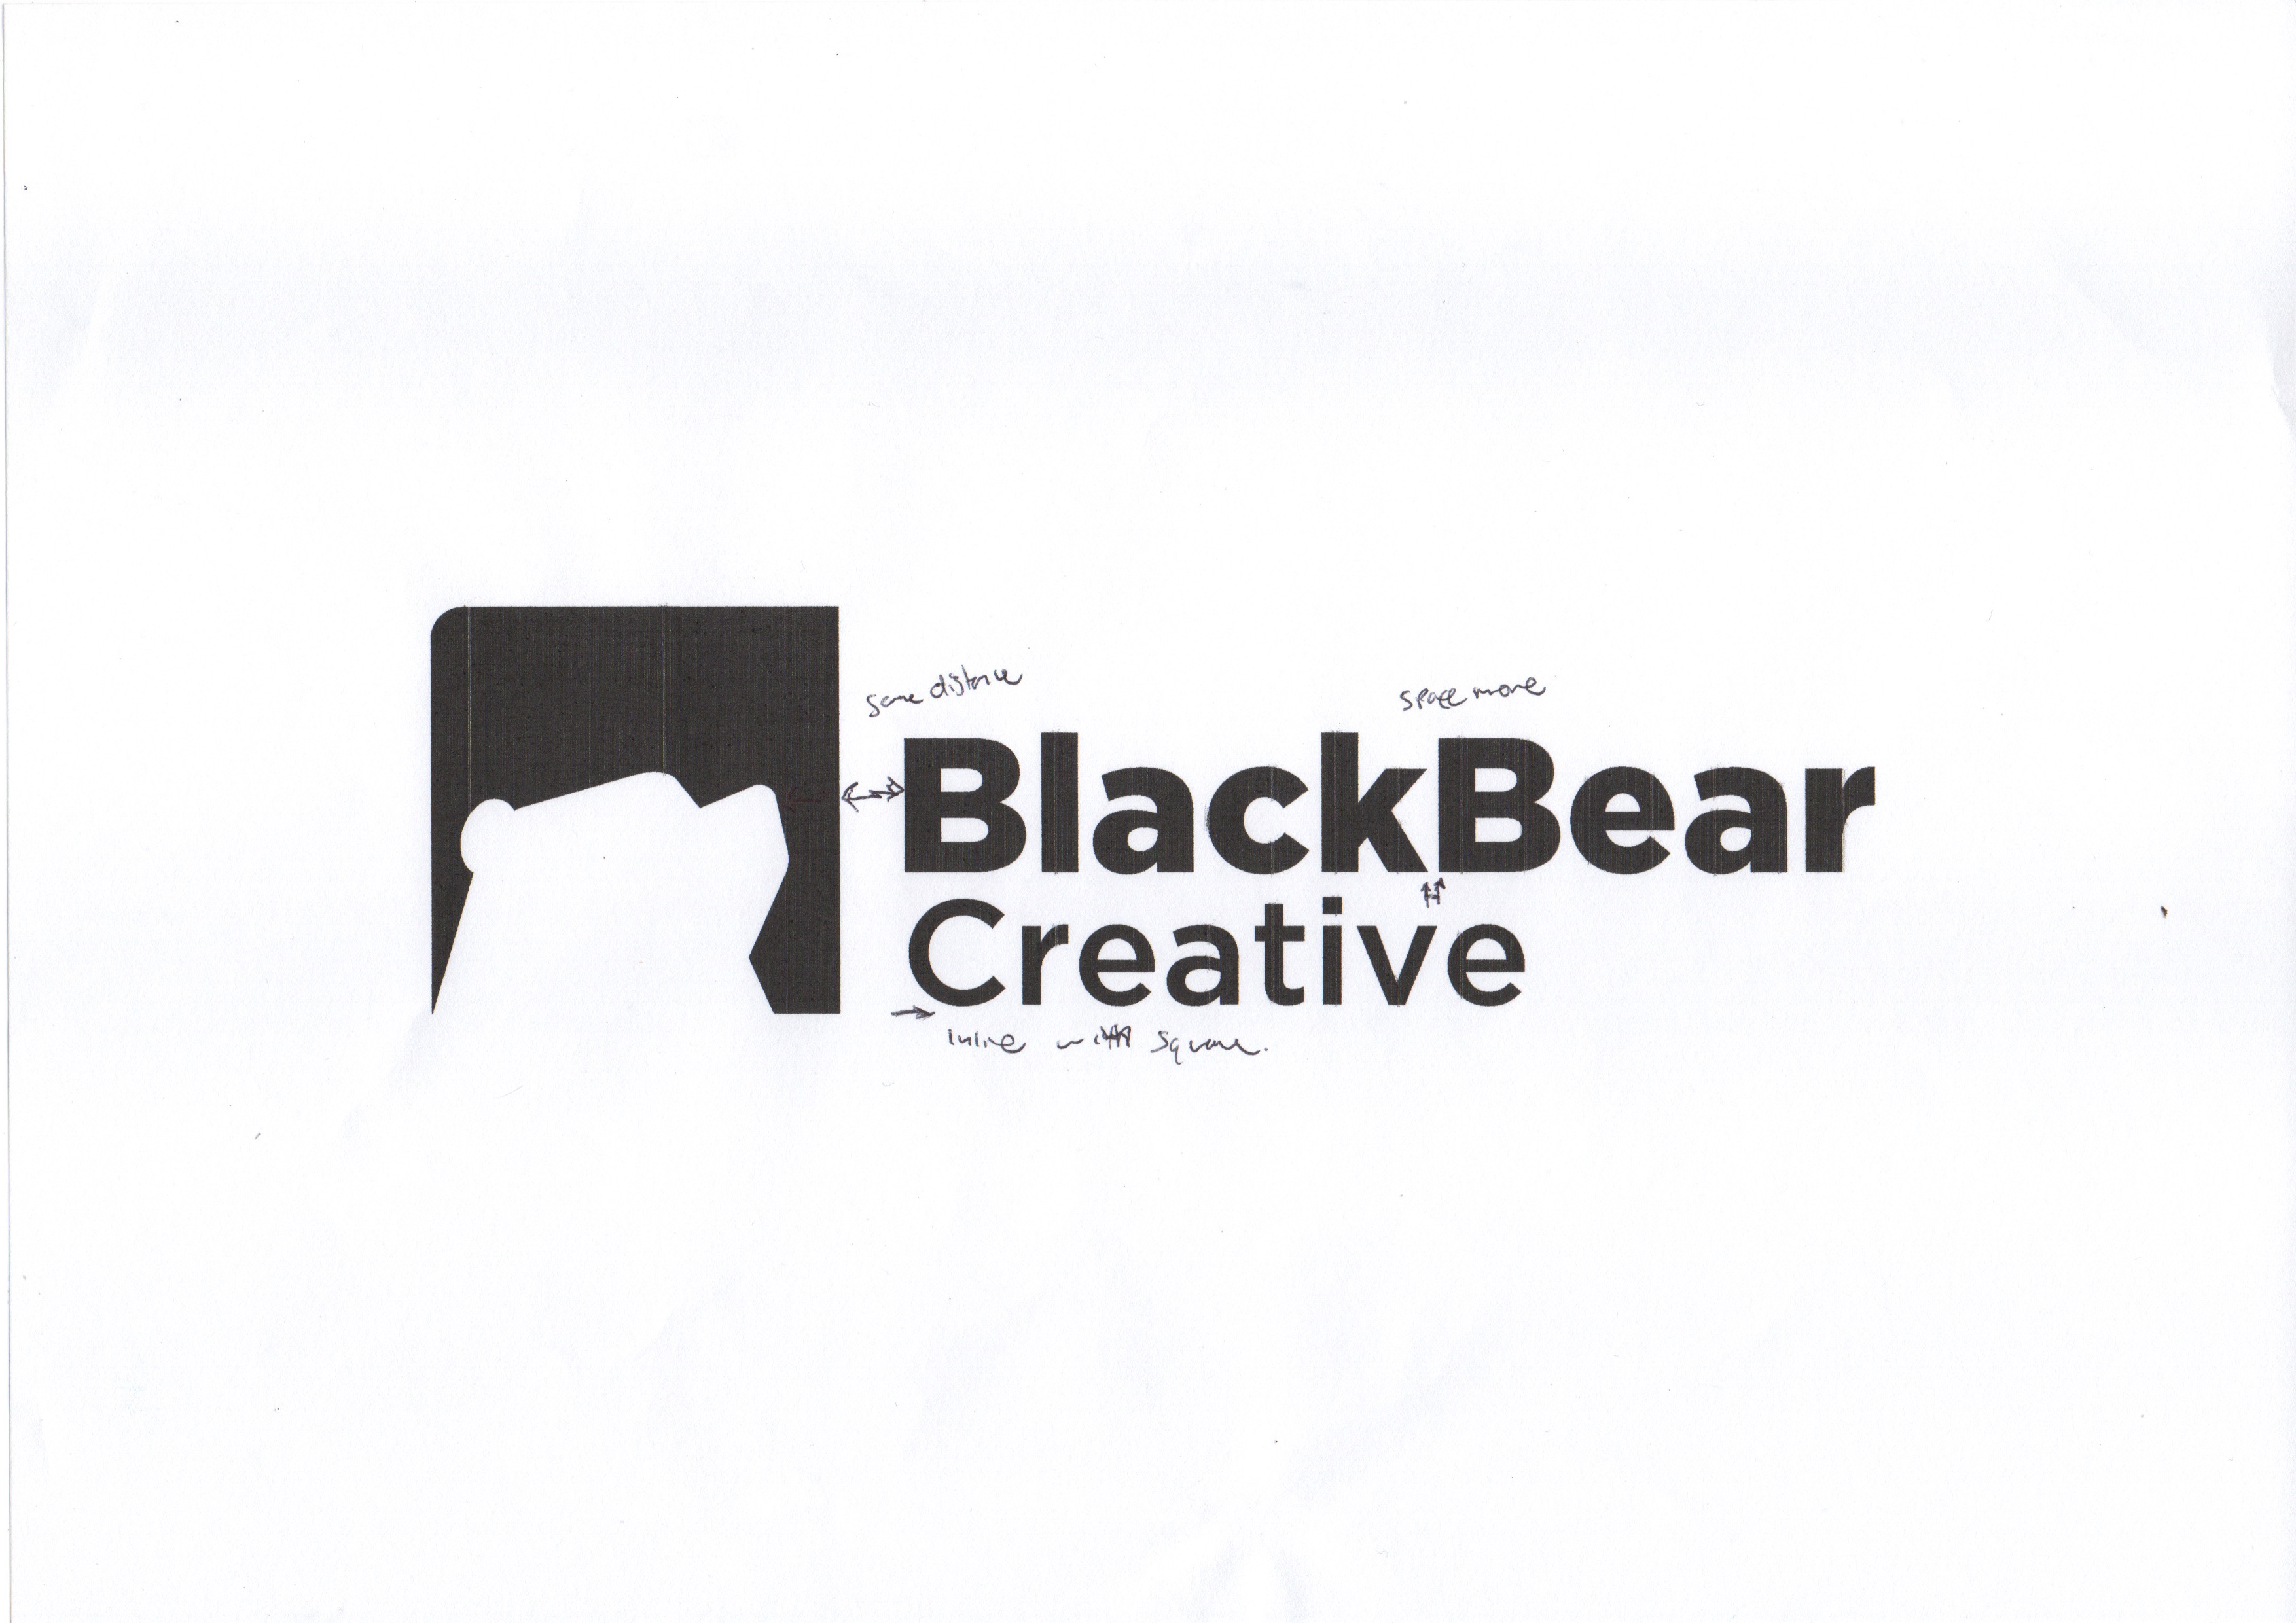 Black Bear concept notes